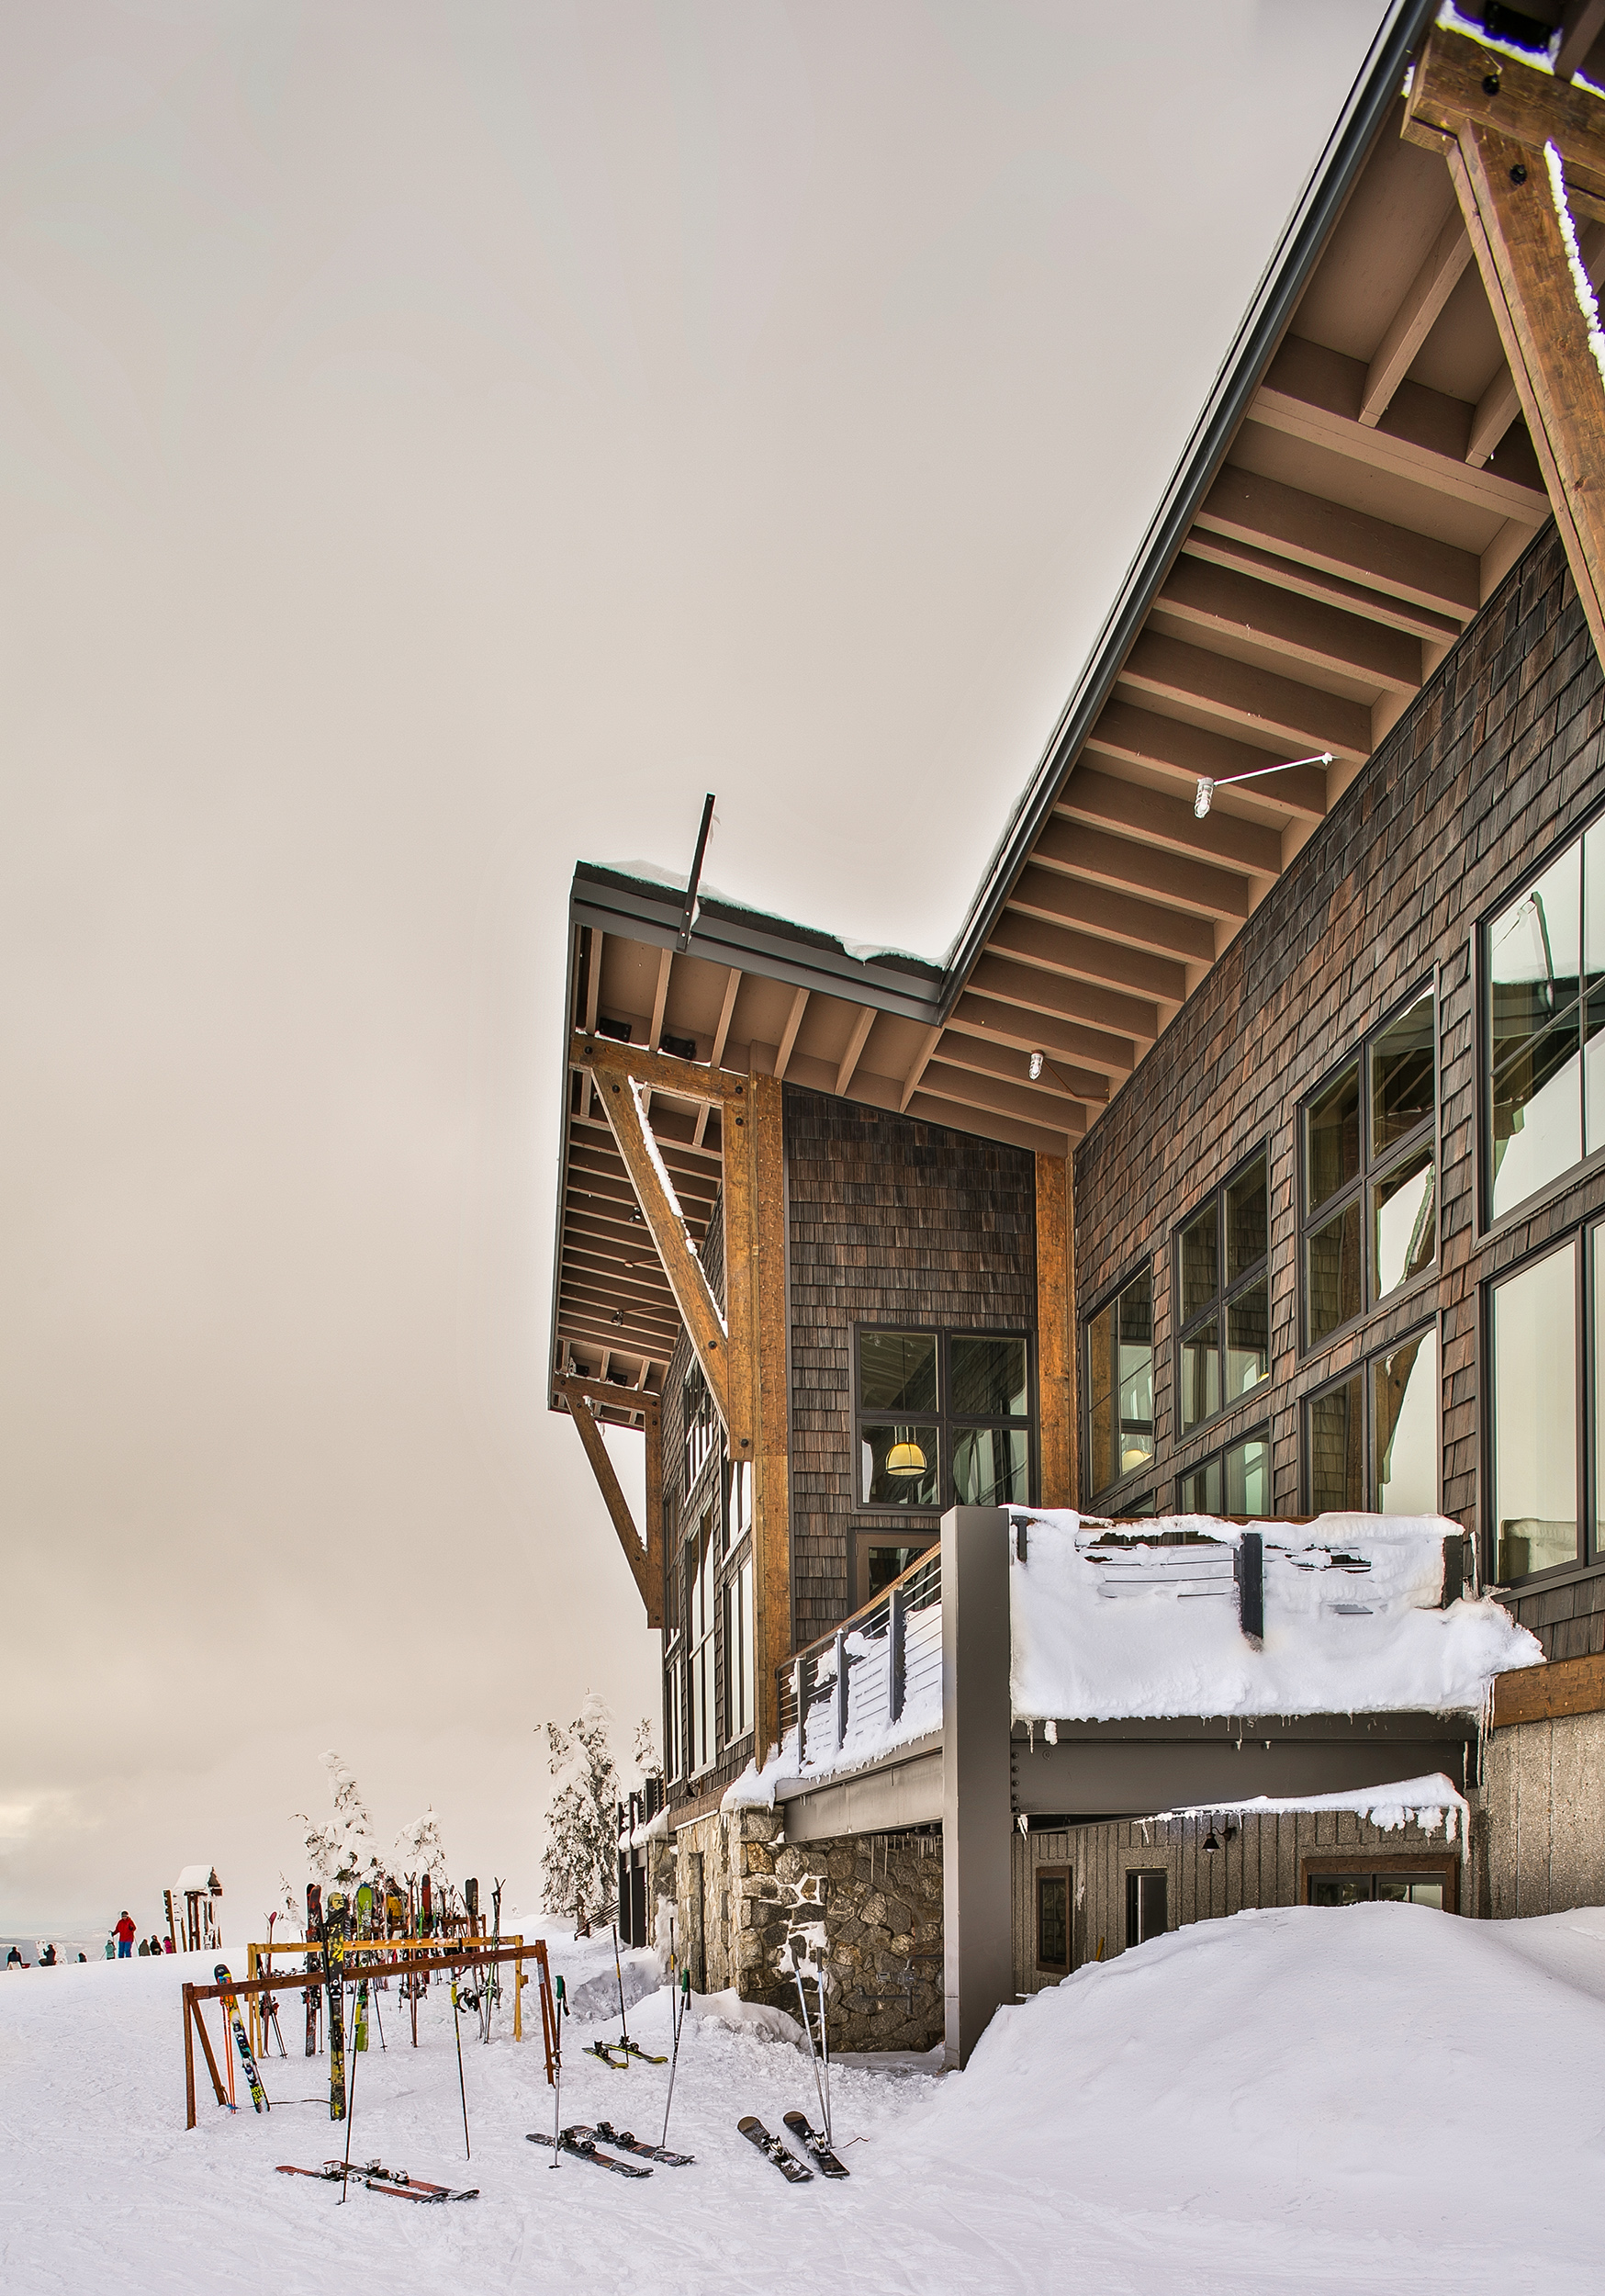 Skyhouse-Exterior-Sky-Schweitzer-Lodge-beams.jpg